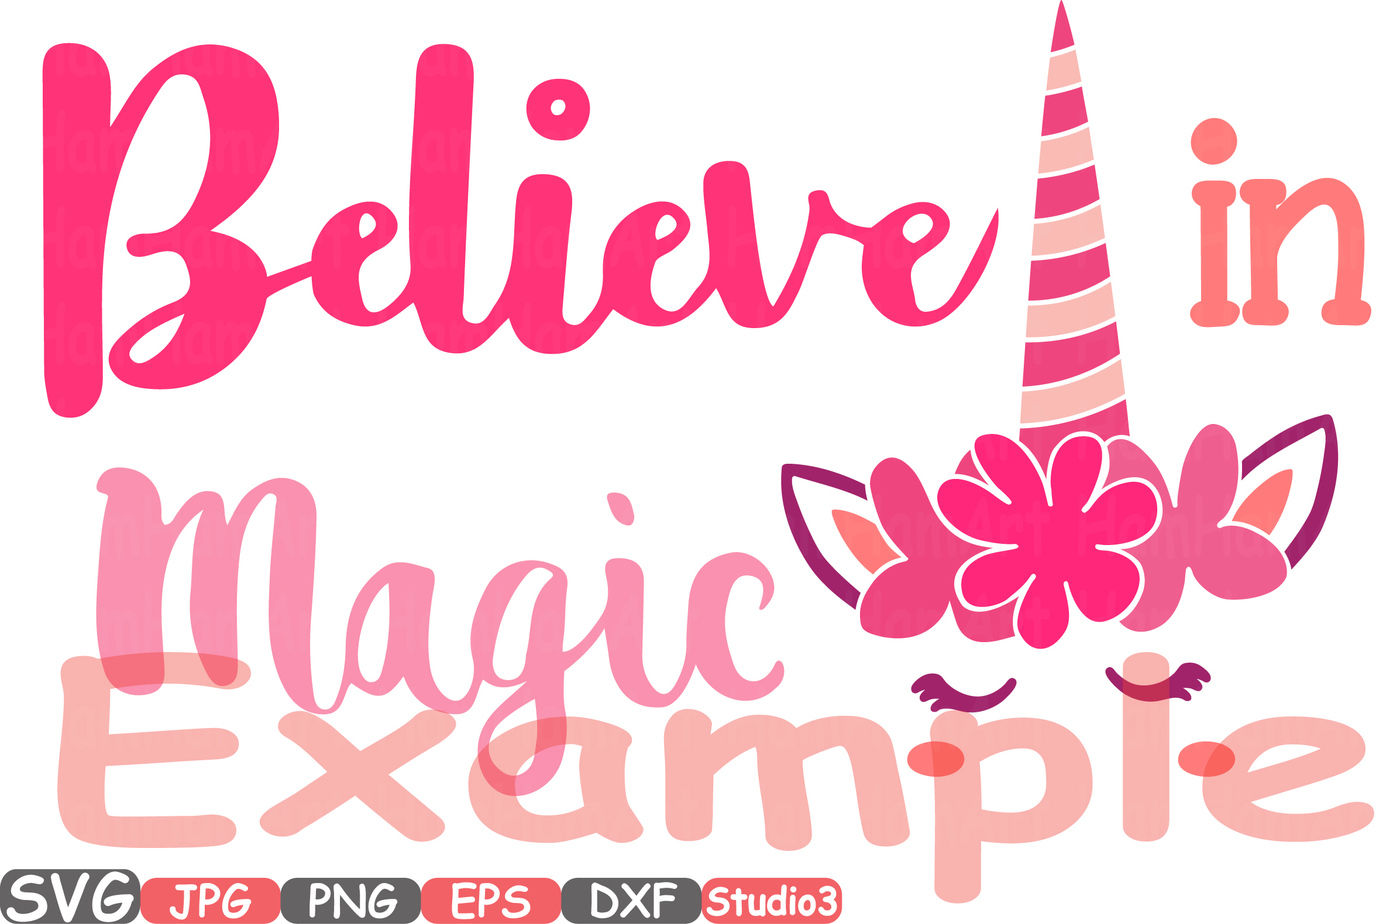 Believe in Magic Flower Unicorn Silhouette SVG Cutting Files